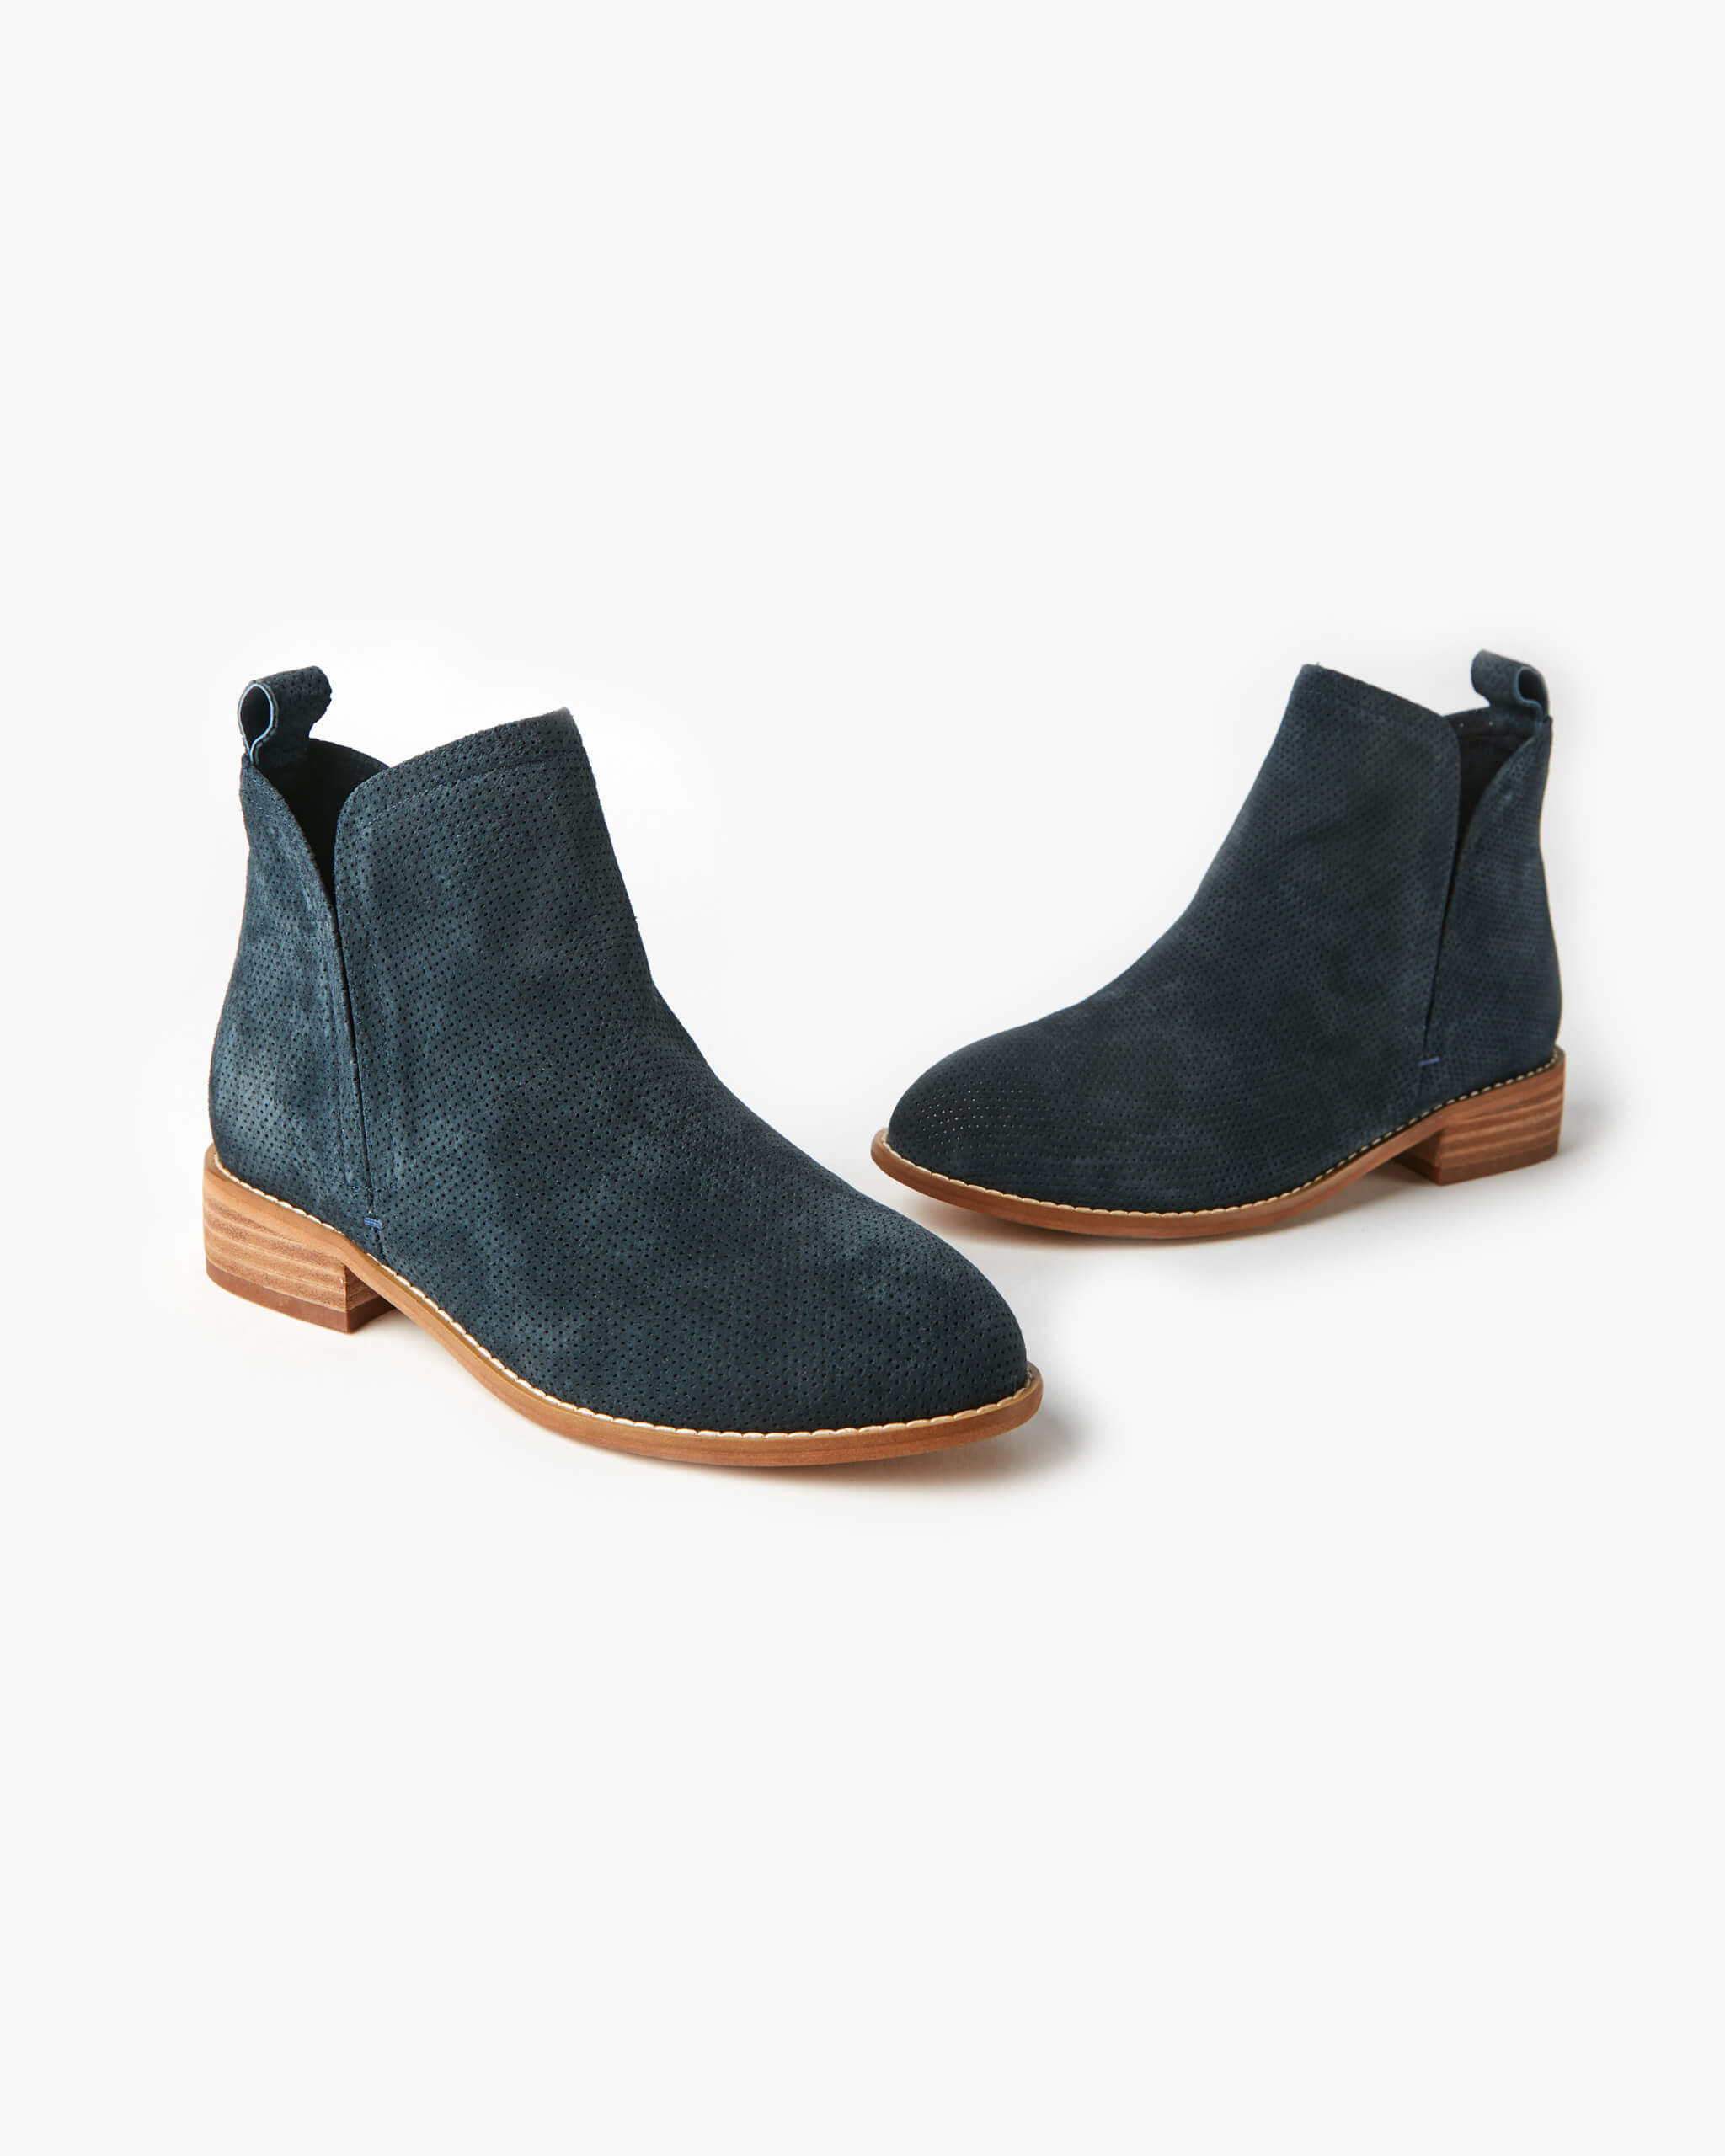 Douglas Leather Ankle Boot - Navy Nubuck